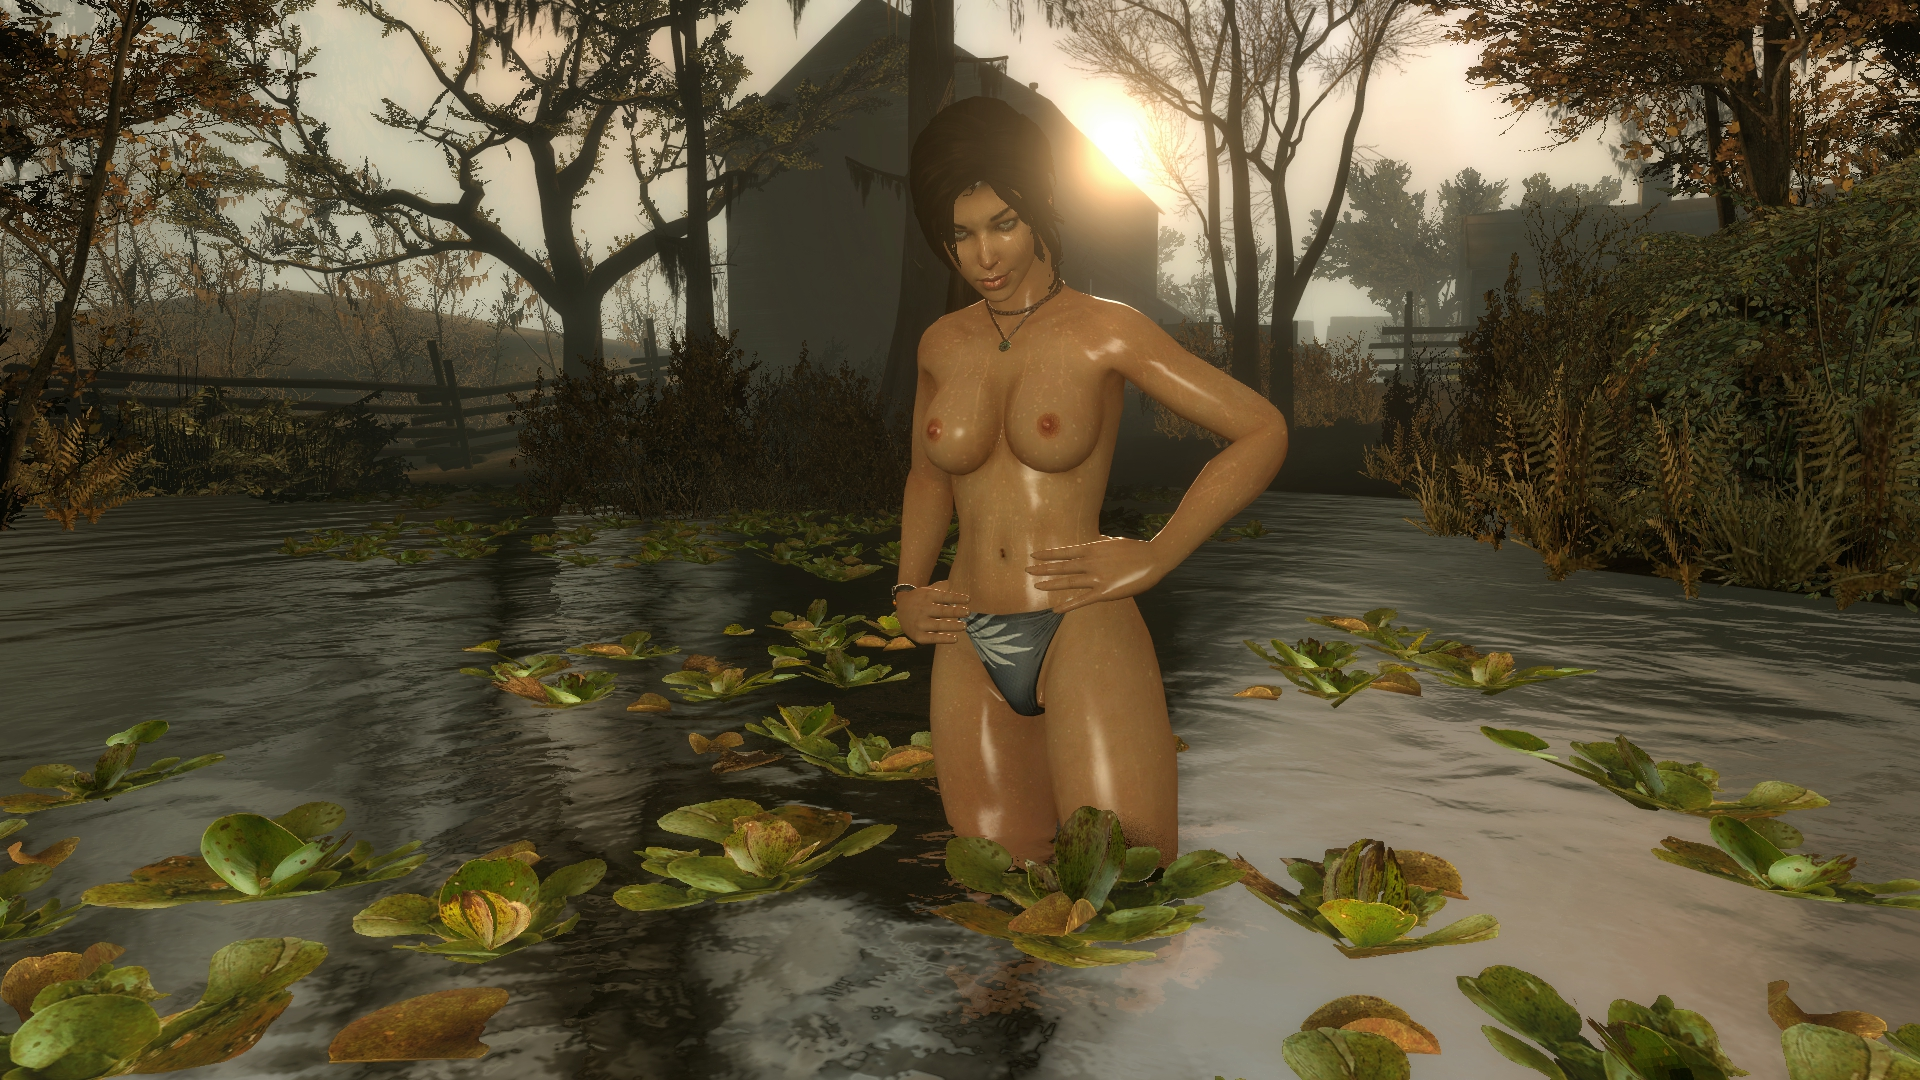 Tomb raider game character nude hentia images